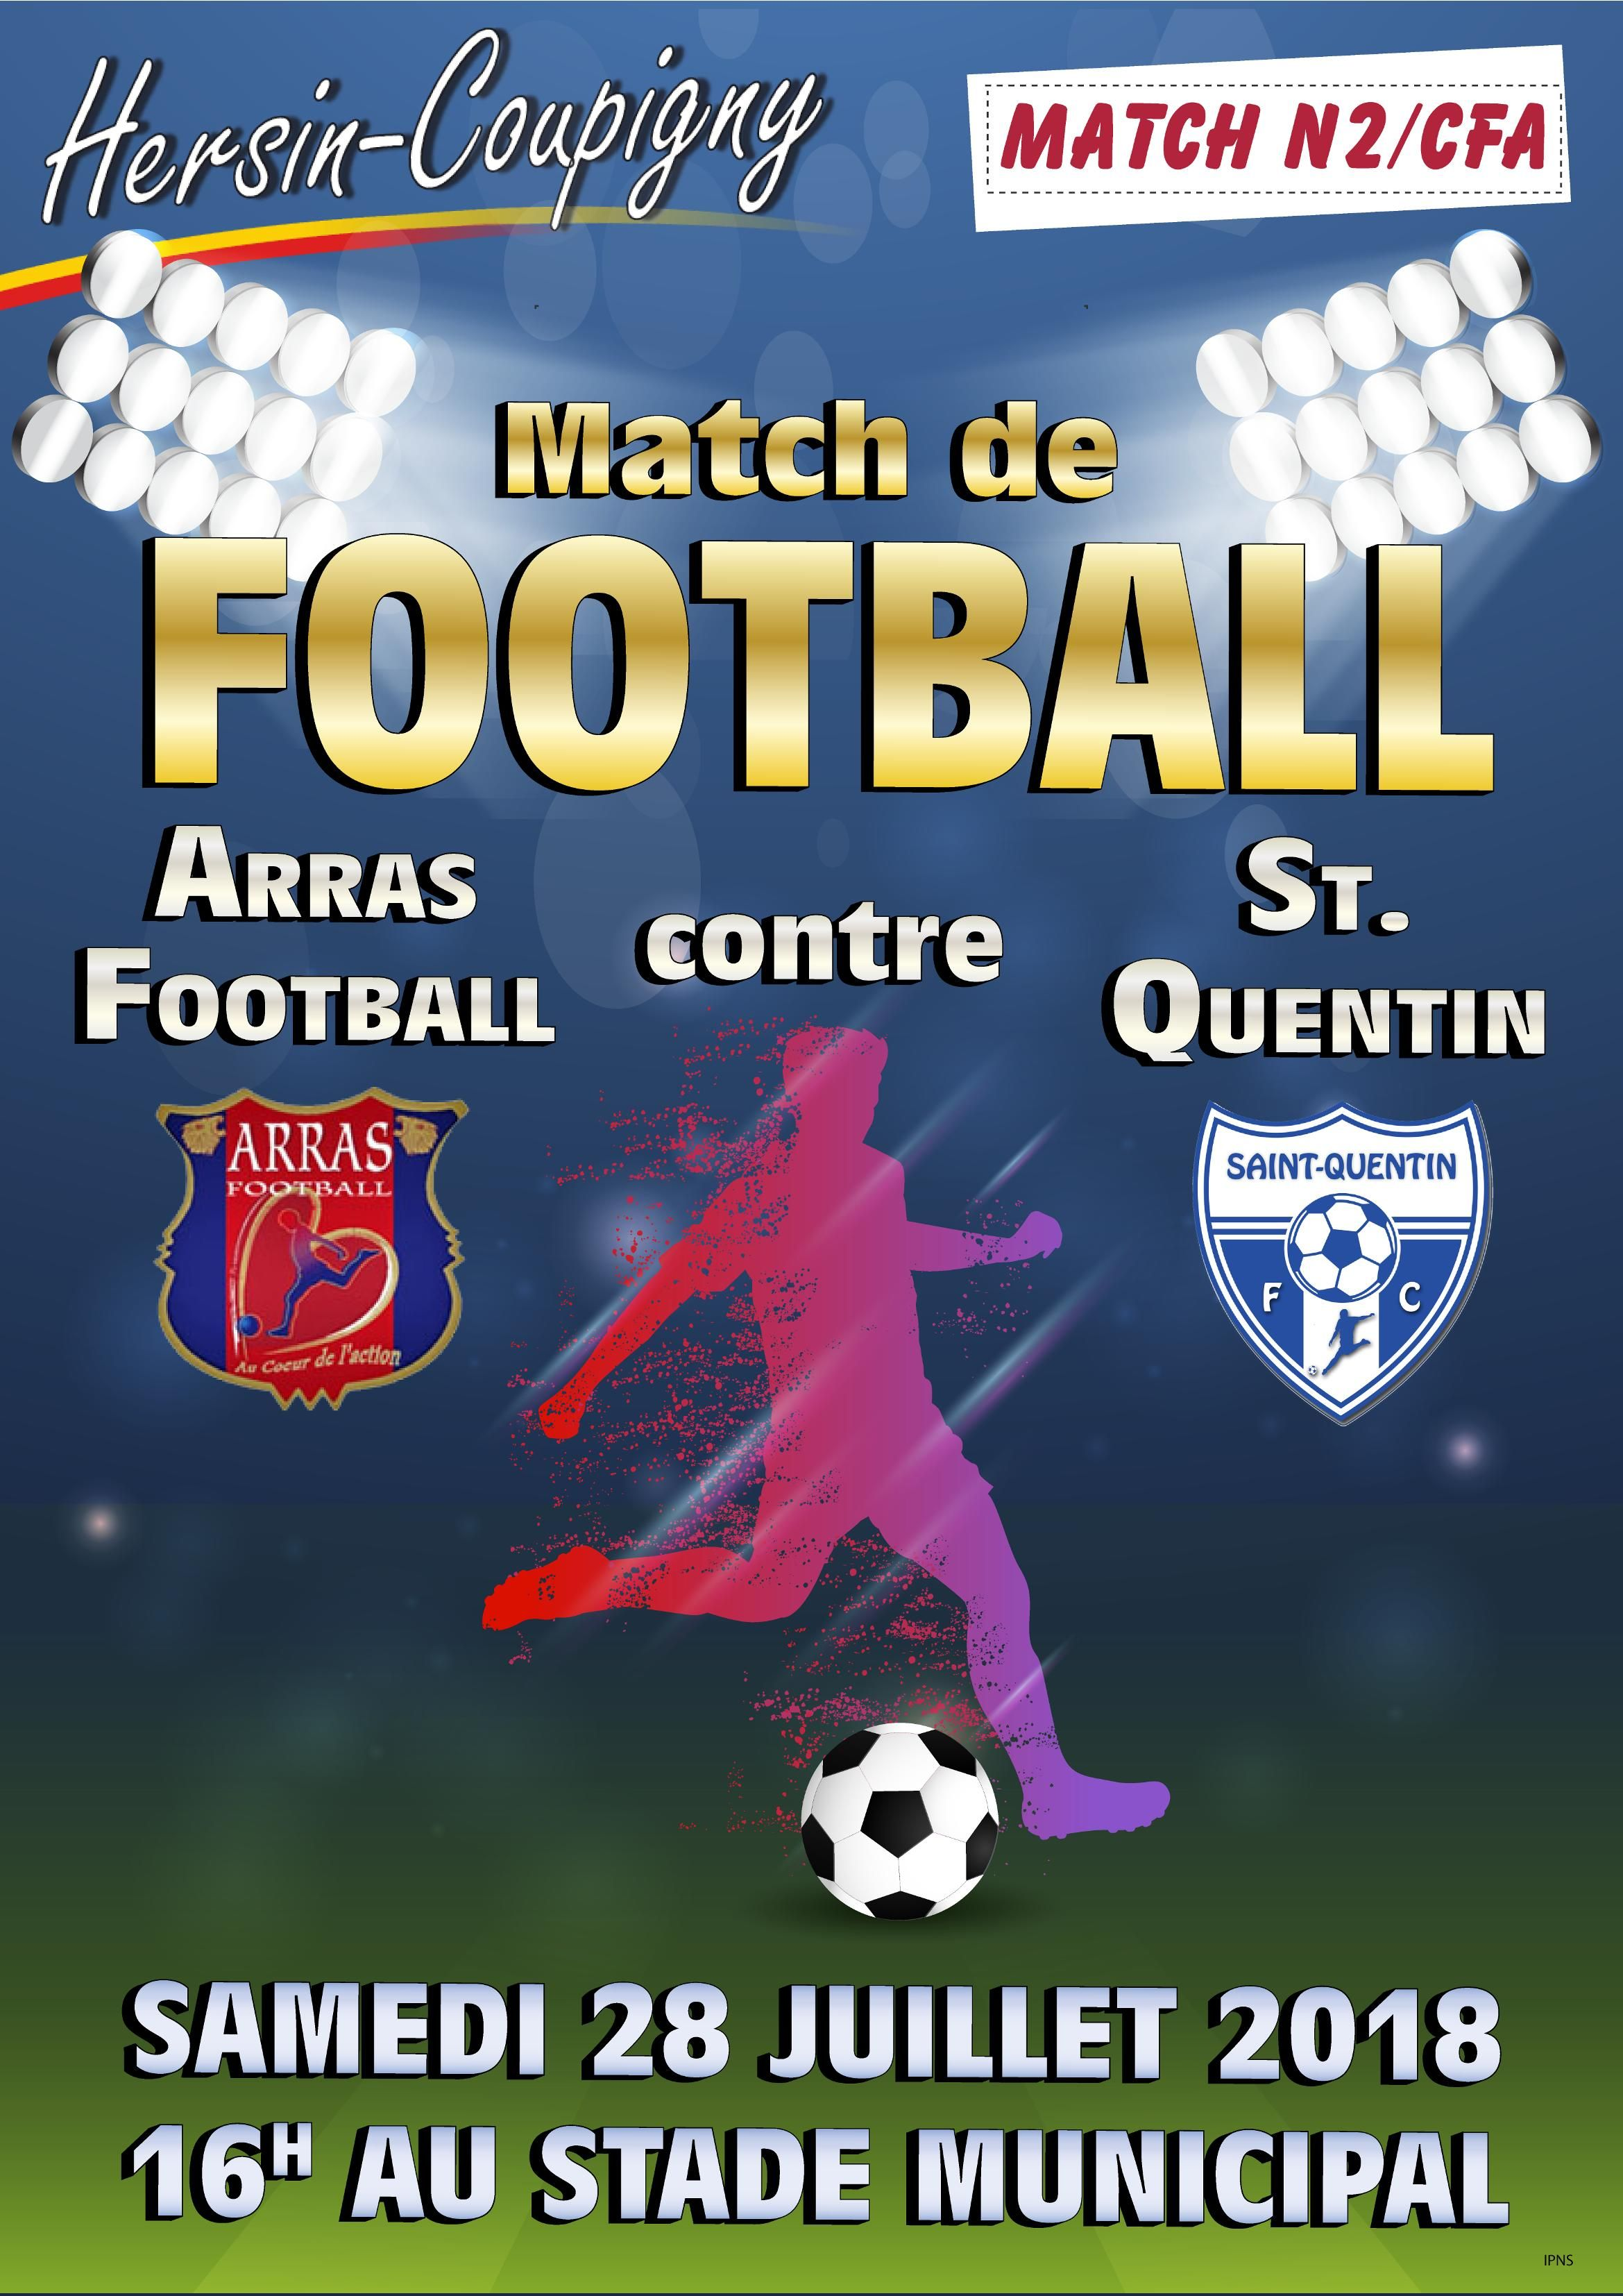 Match de football Arras (N2) – St-Quentin (CFA) @ Stade municipal | Hersin-Coupigny | Hauts-de-France | France